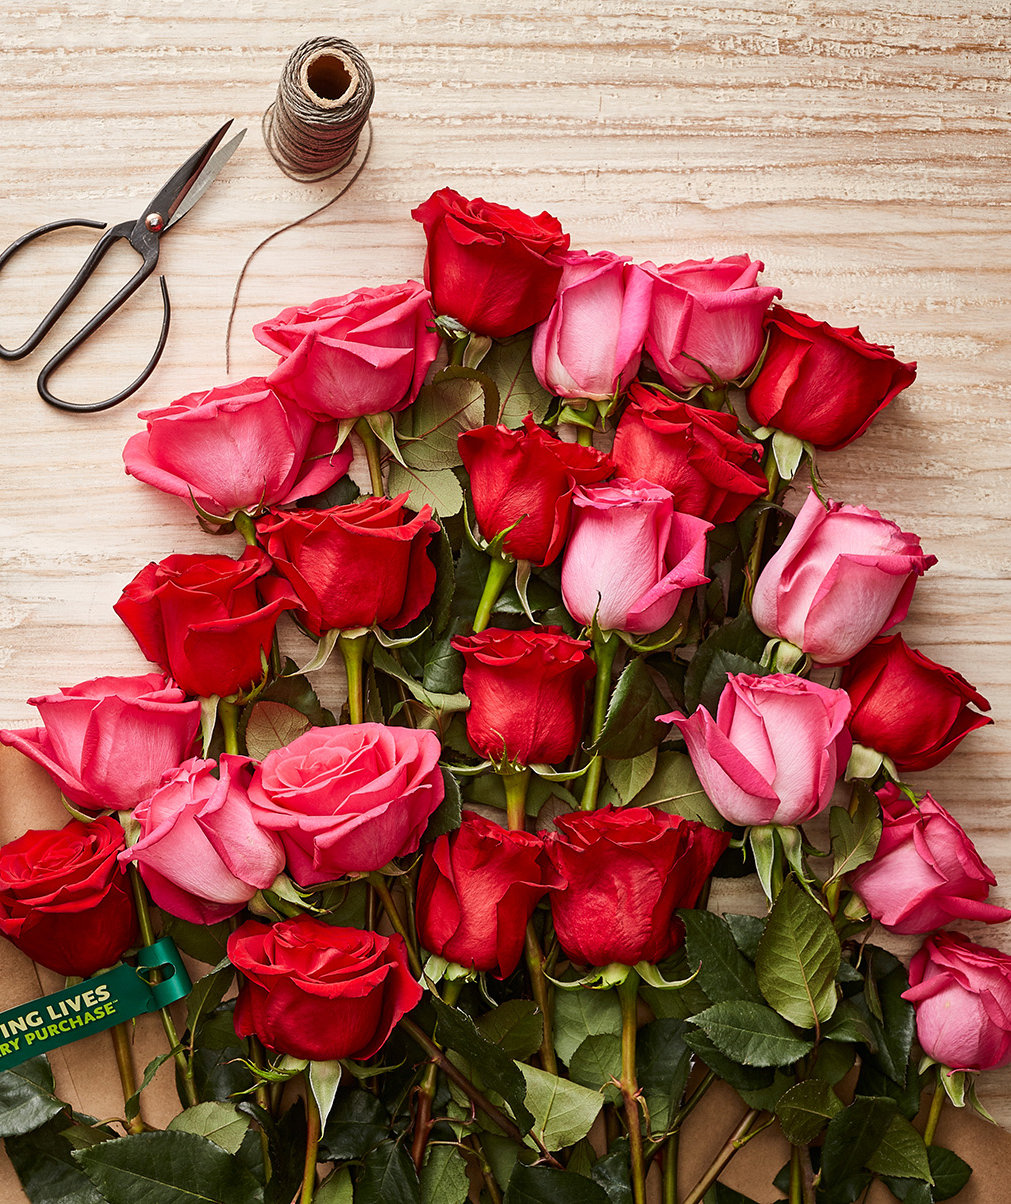 The Best Valentine's Day Flower Deals From Whole Foods, Trader Joe's, Aldi, and More